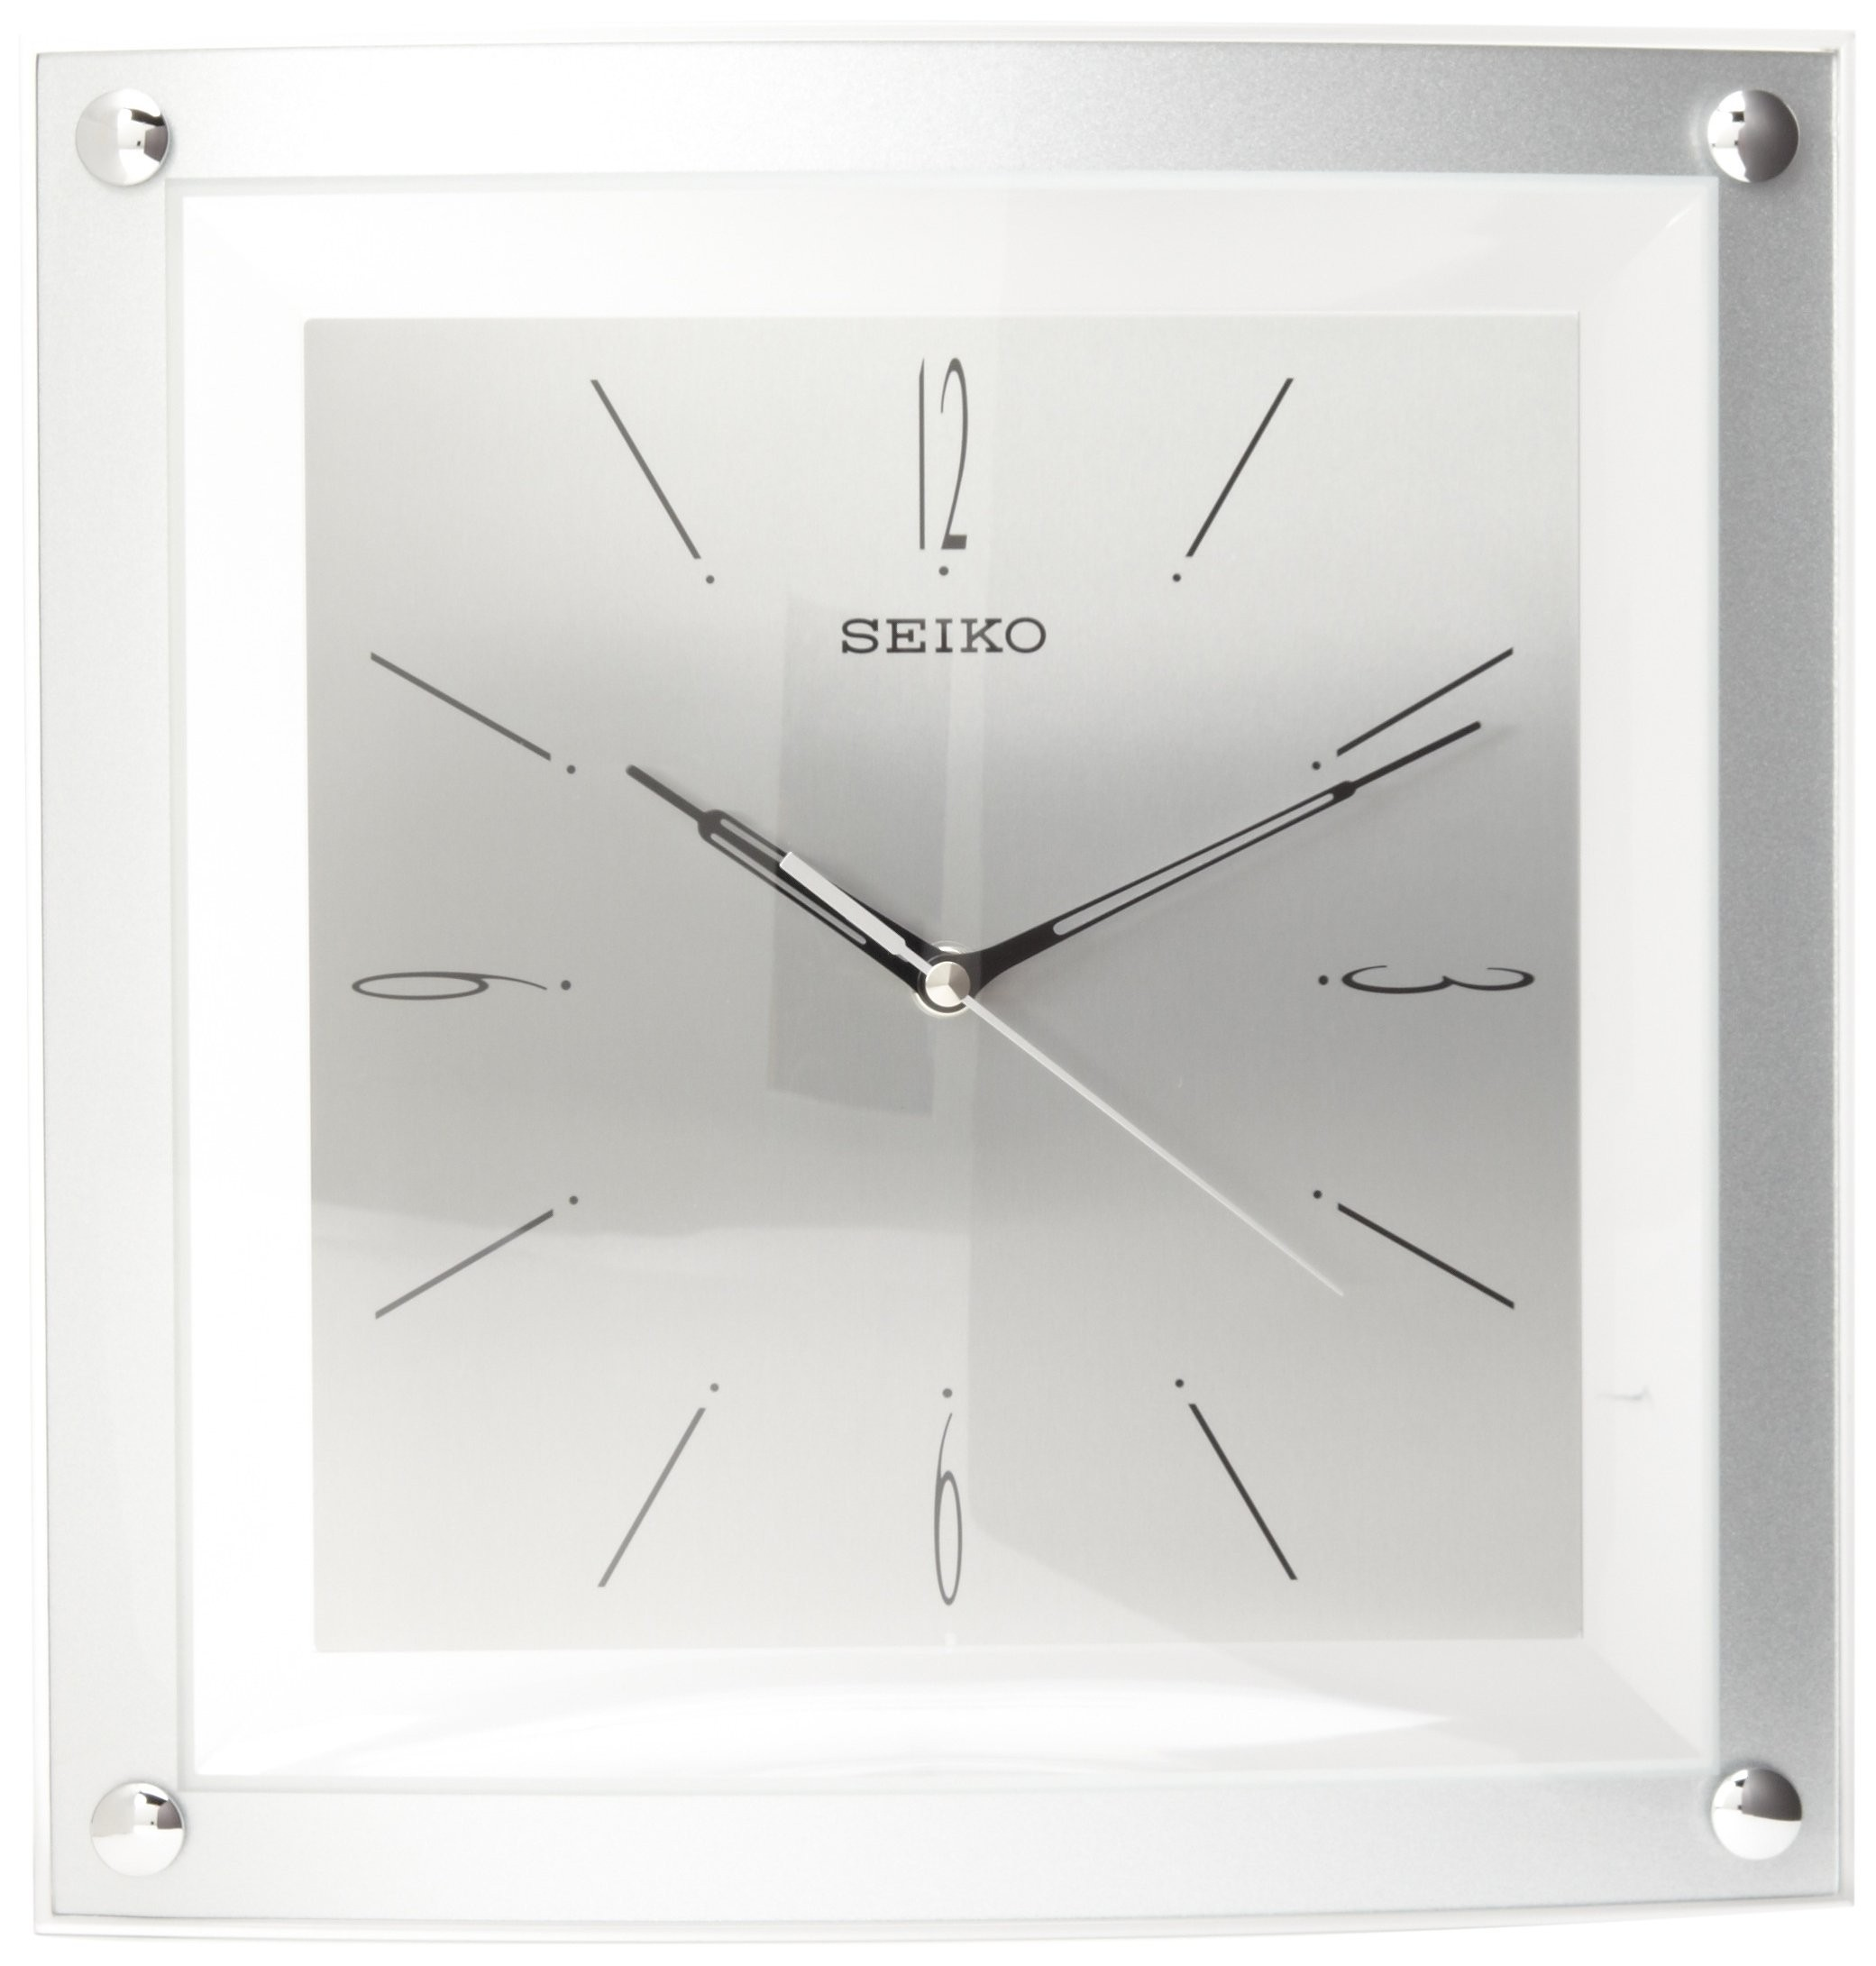 Seiko Wall Clock Quiet Sweep Second Hand Clock Silver Tone Metallic Case